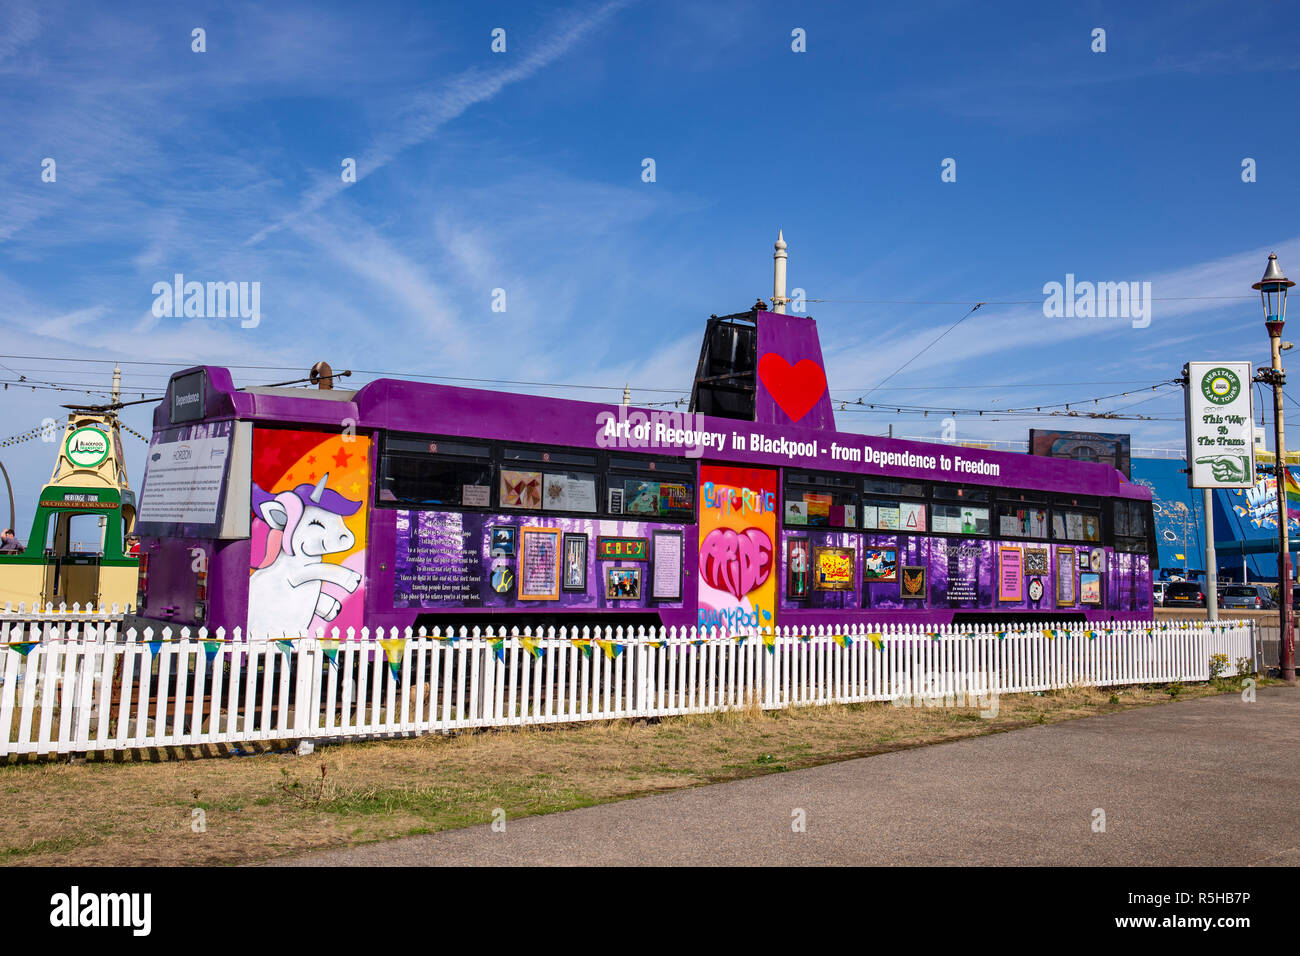 Disused tram used for art work display in Blackpool Lancashire UK - Stock Image